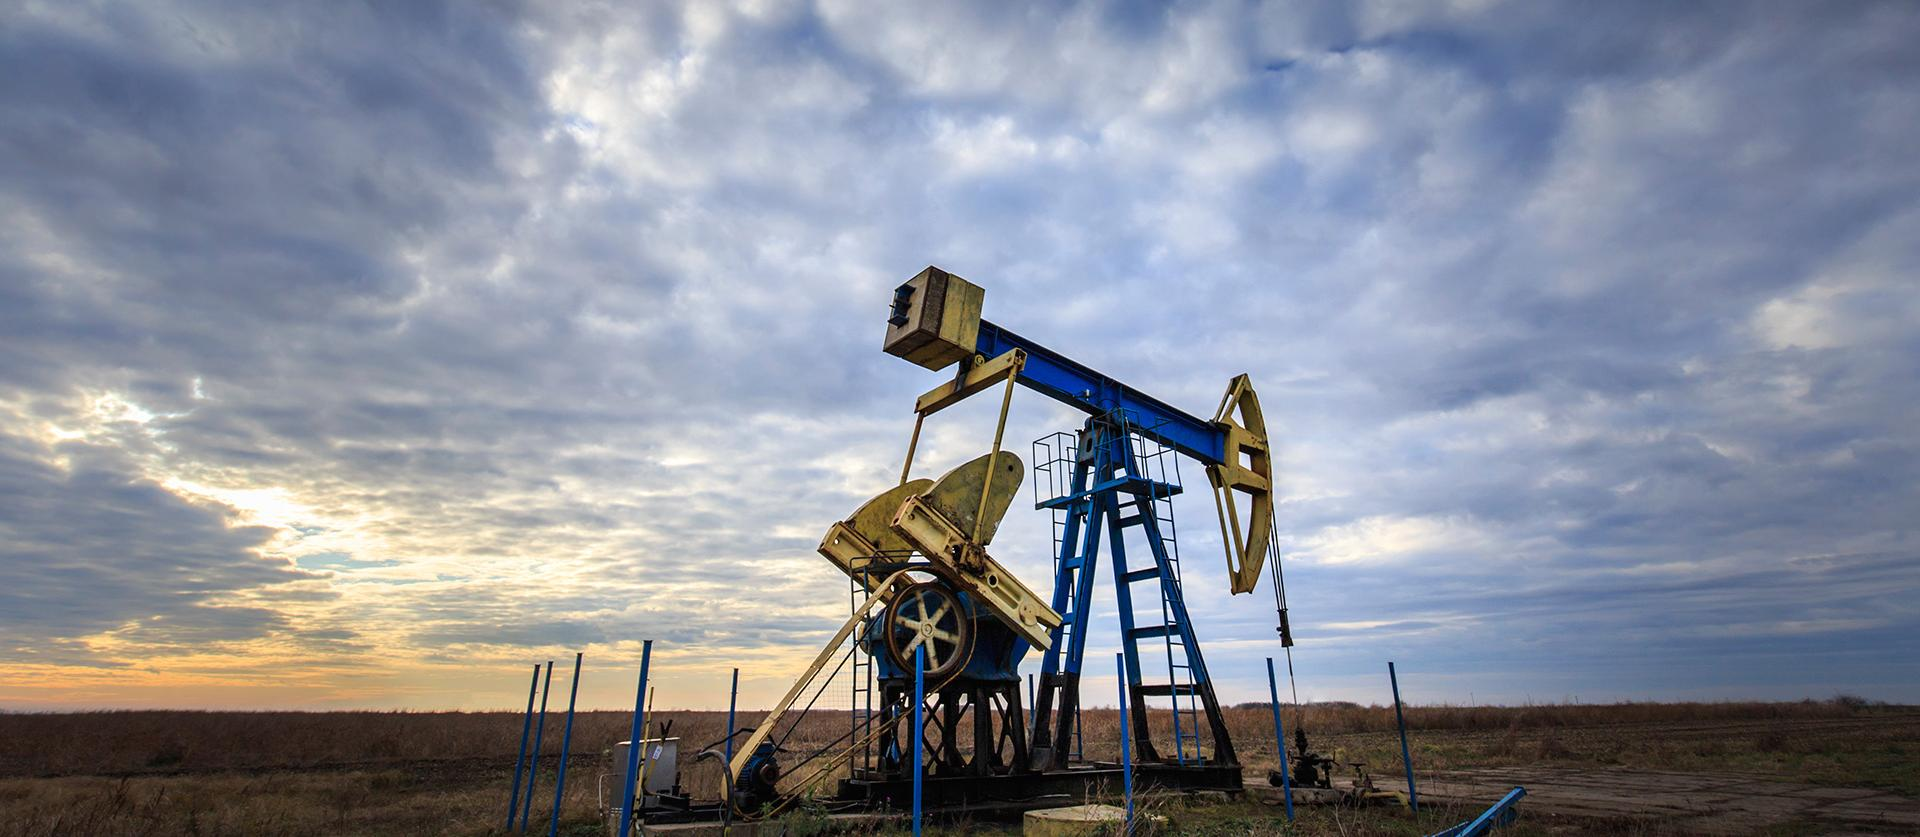 Turkey is focused on shale oil/shale gas production